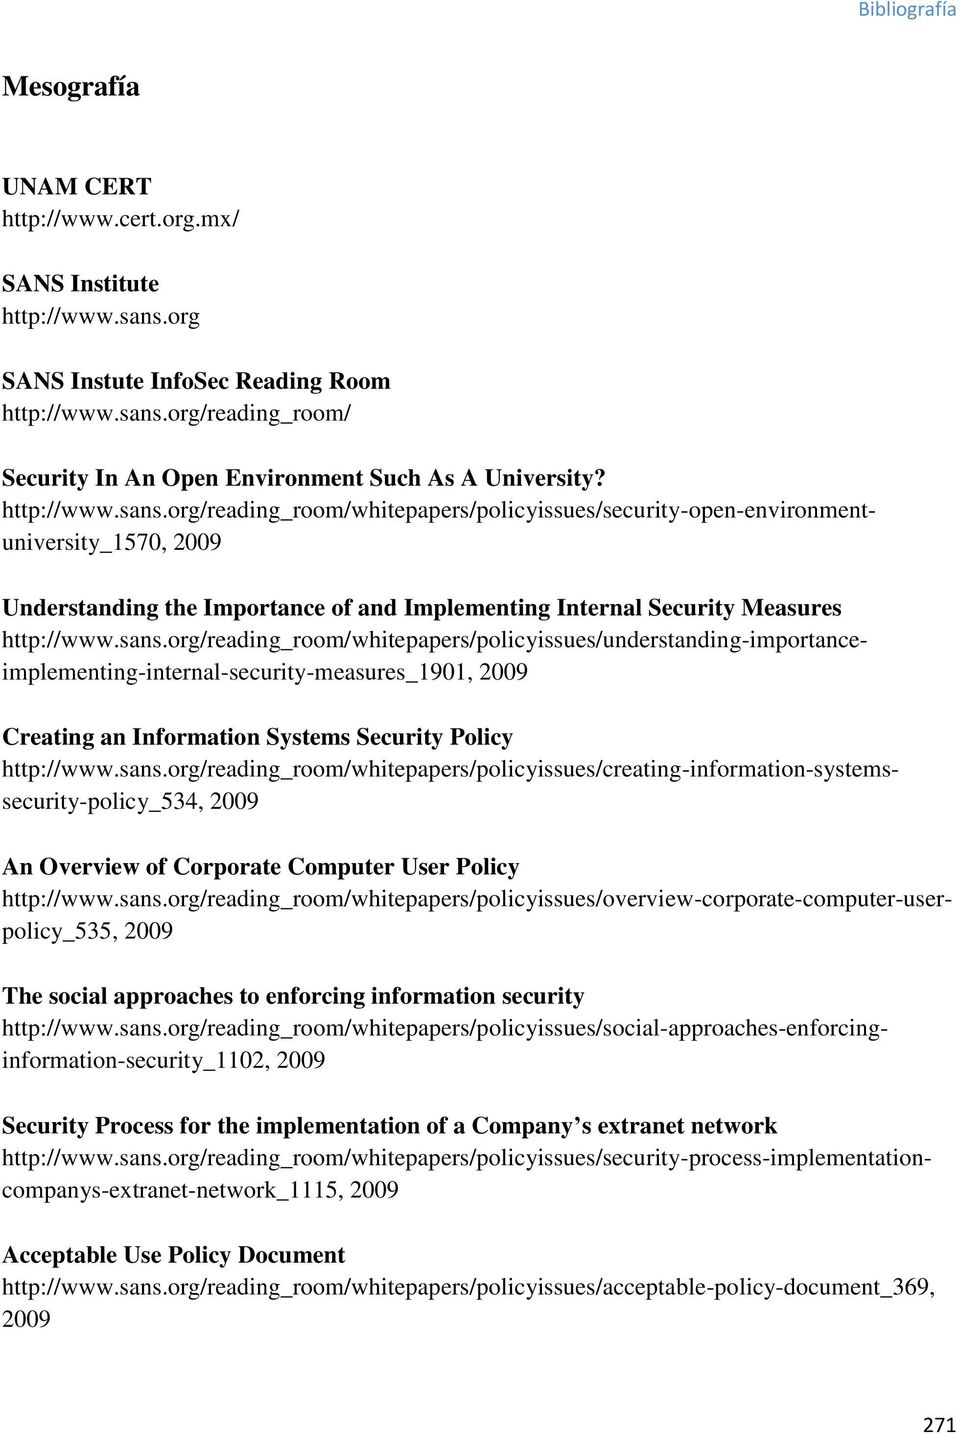 sans.org/reading_room/whitepapers/policyissues/creating-information-systemssecurity-policy_534, An Overview of Corporate Computer User Policy http://www.sans.org/reading_room/whitepapers/policyissues/overview-corporate-computer-userpolicy_535, The social approaches to enforcing information security http://www.